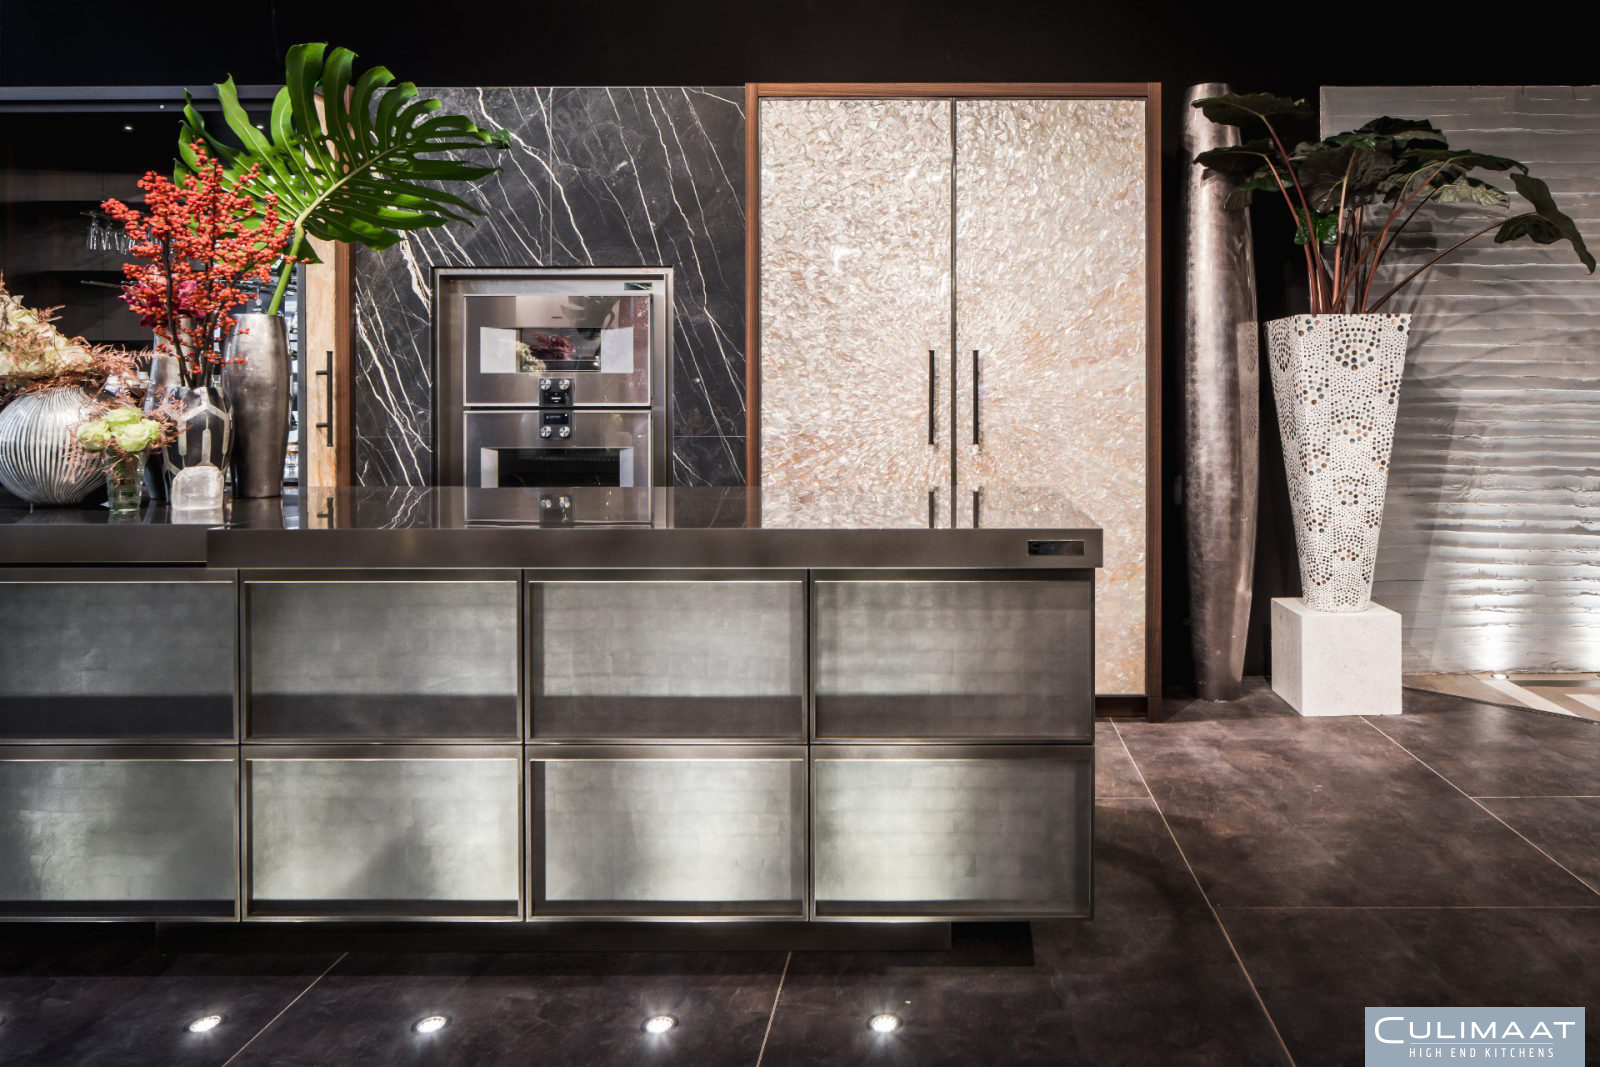 Lxry Beurs 2018 Amsterdam Culimaat High End Kitchens In 2020